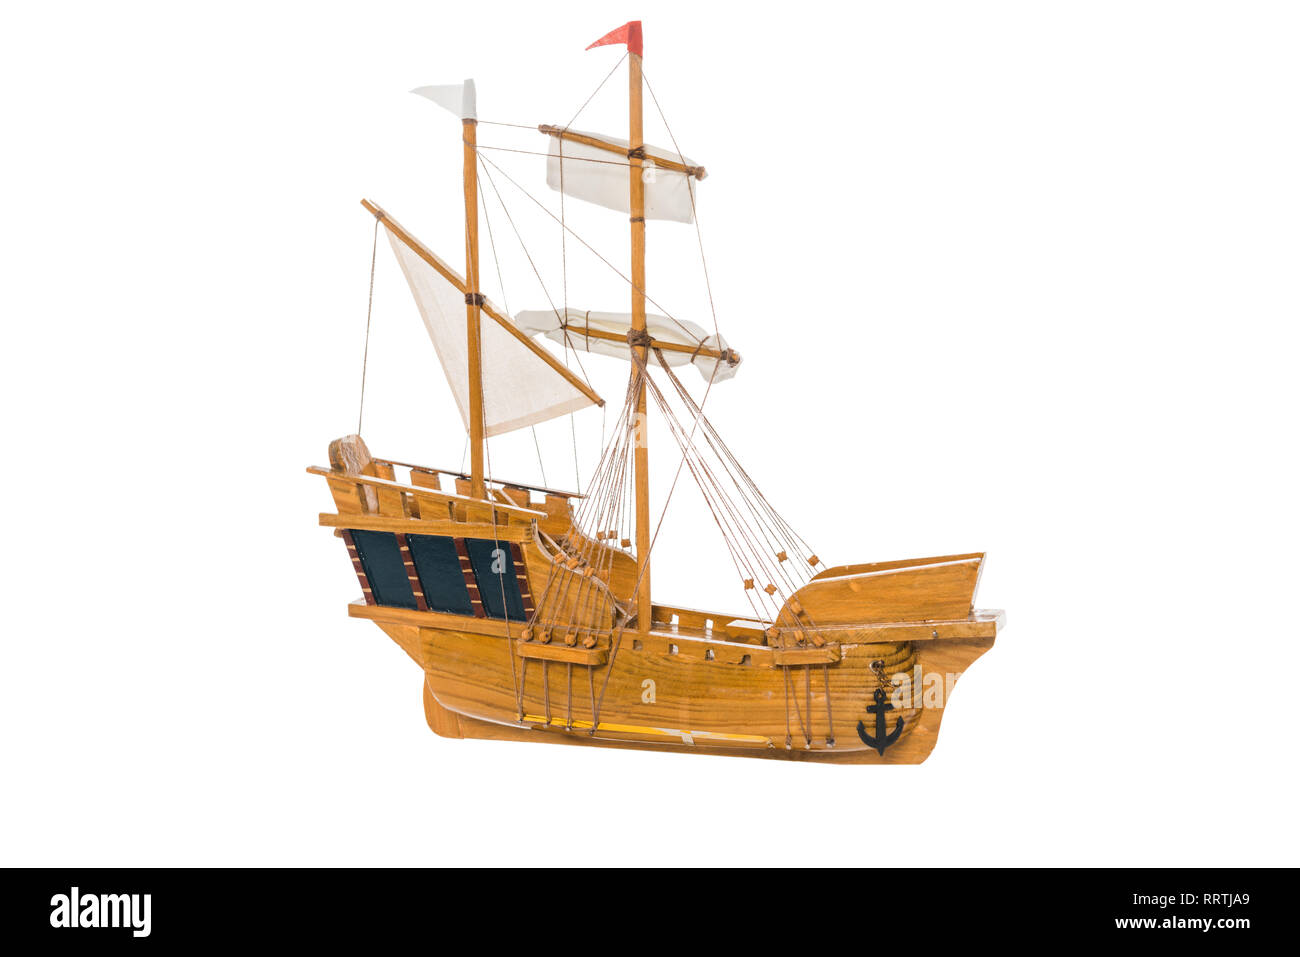 wooden ship model floating in air isolated on white - Stock Image